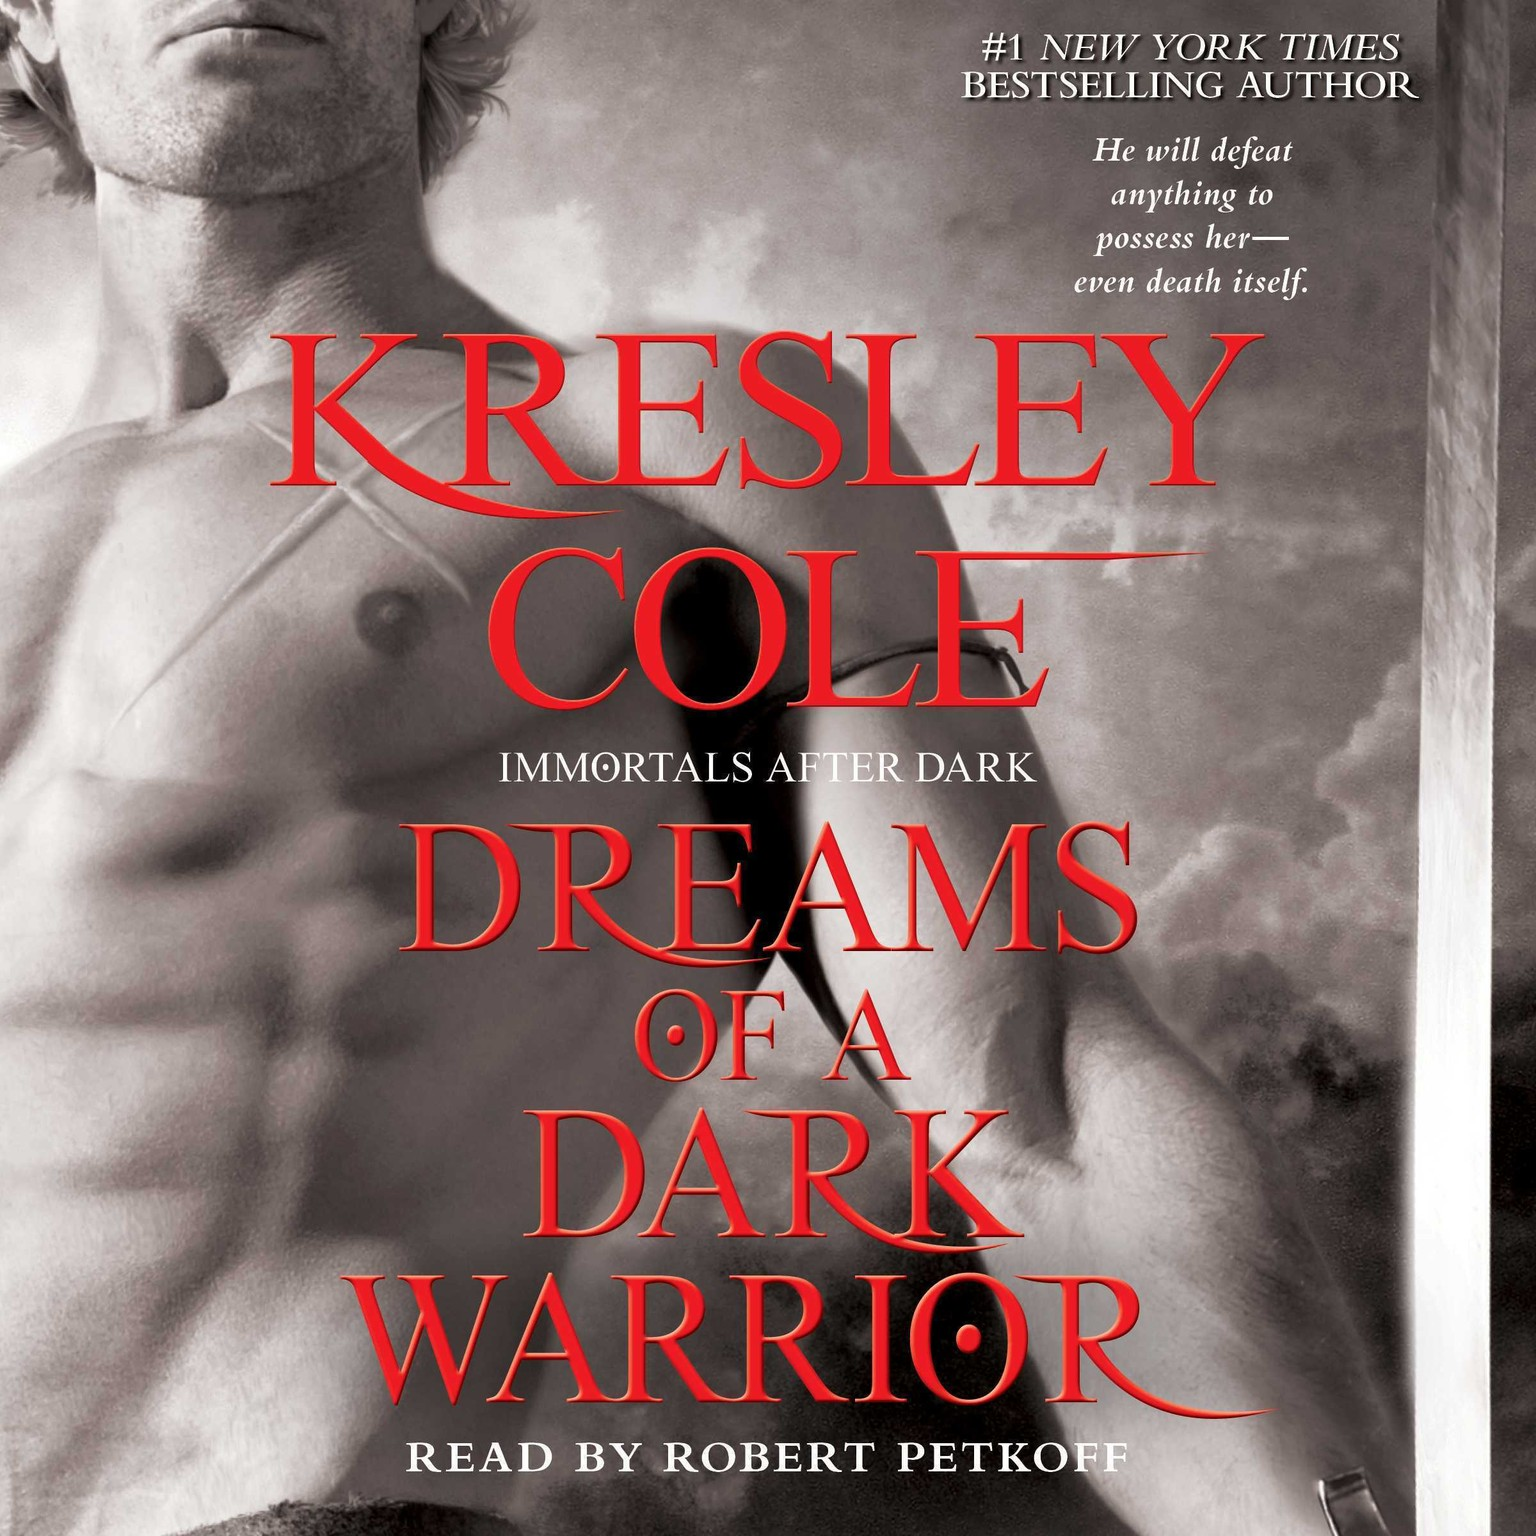 Printable Dreams of a Dark Warrior Audiobook Cover Art